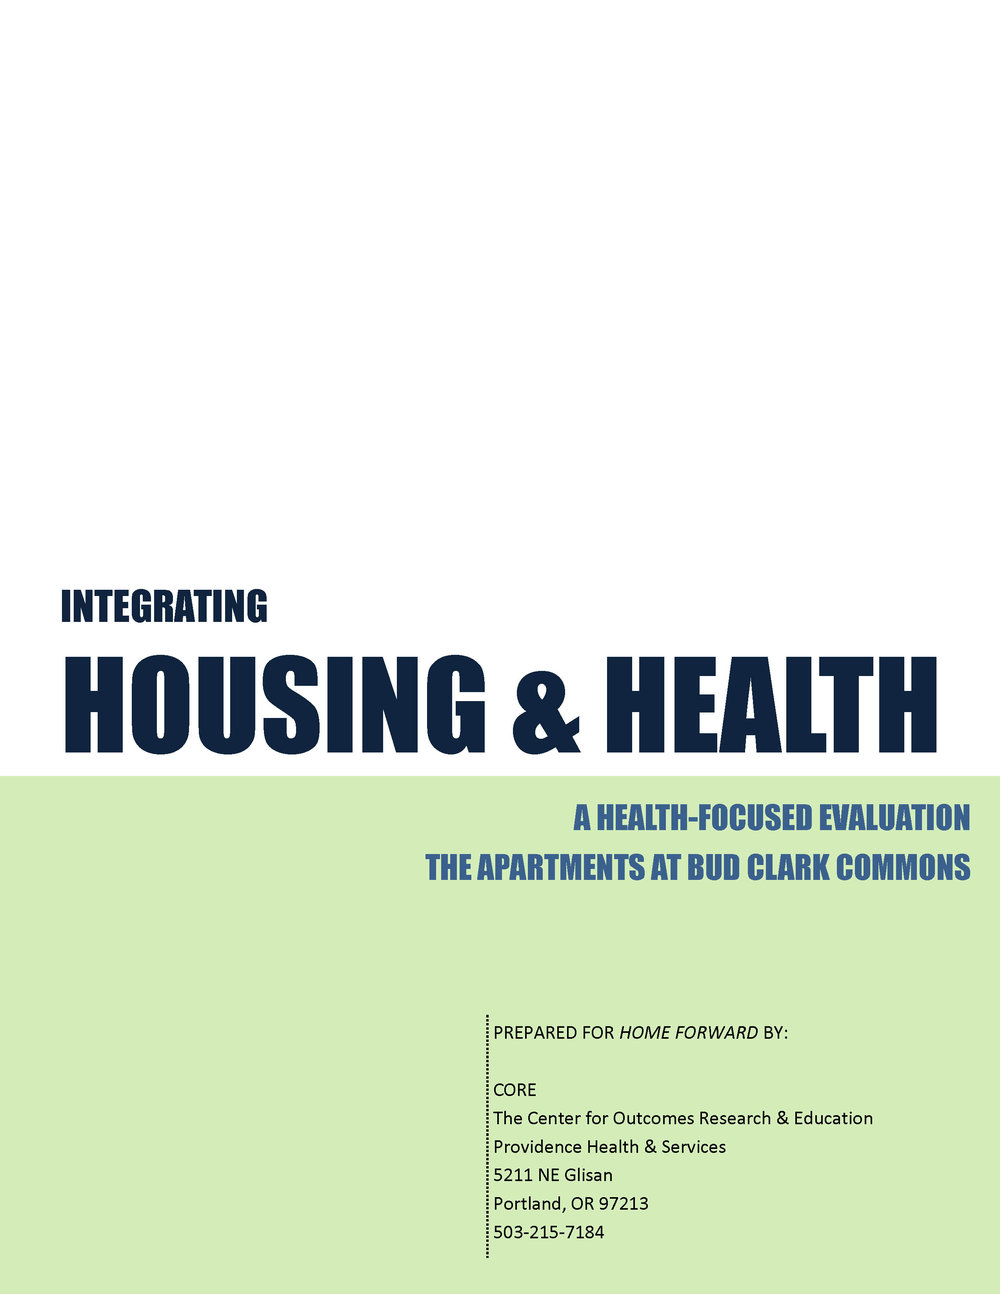 Inregrating Housing & Health Report, April 2014